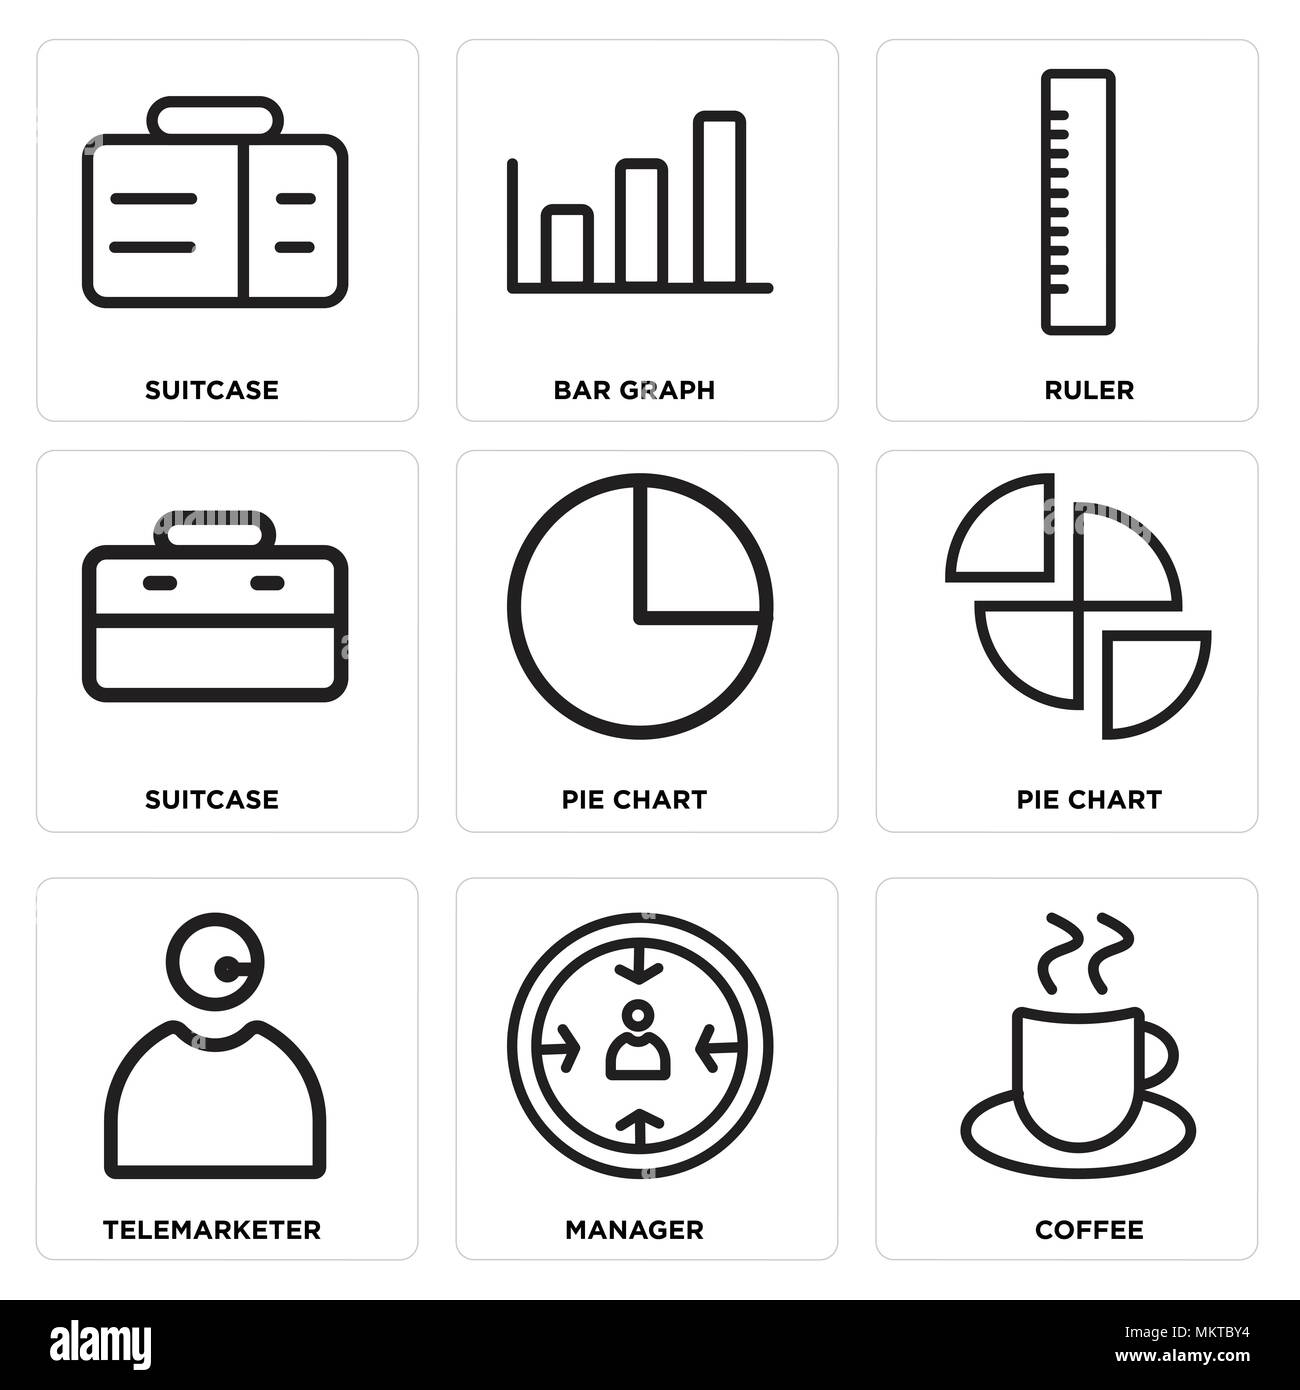 Set Of 9 simple editable icons such as Coffee, Manager, Telemarketer, Pie chart, Suitcase, Ruler, Bar graph, can be used for mobile, web - Stock Image